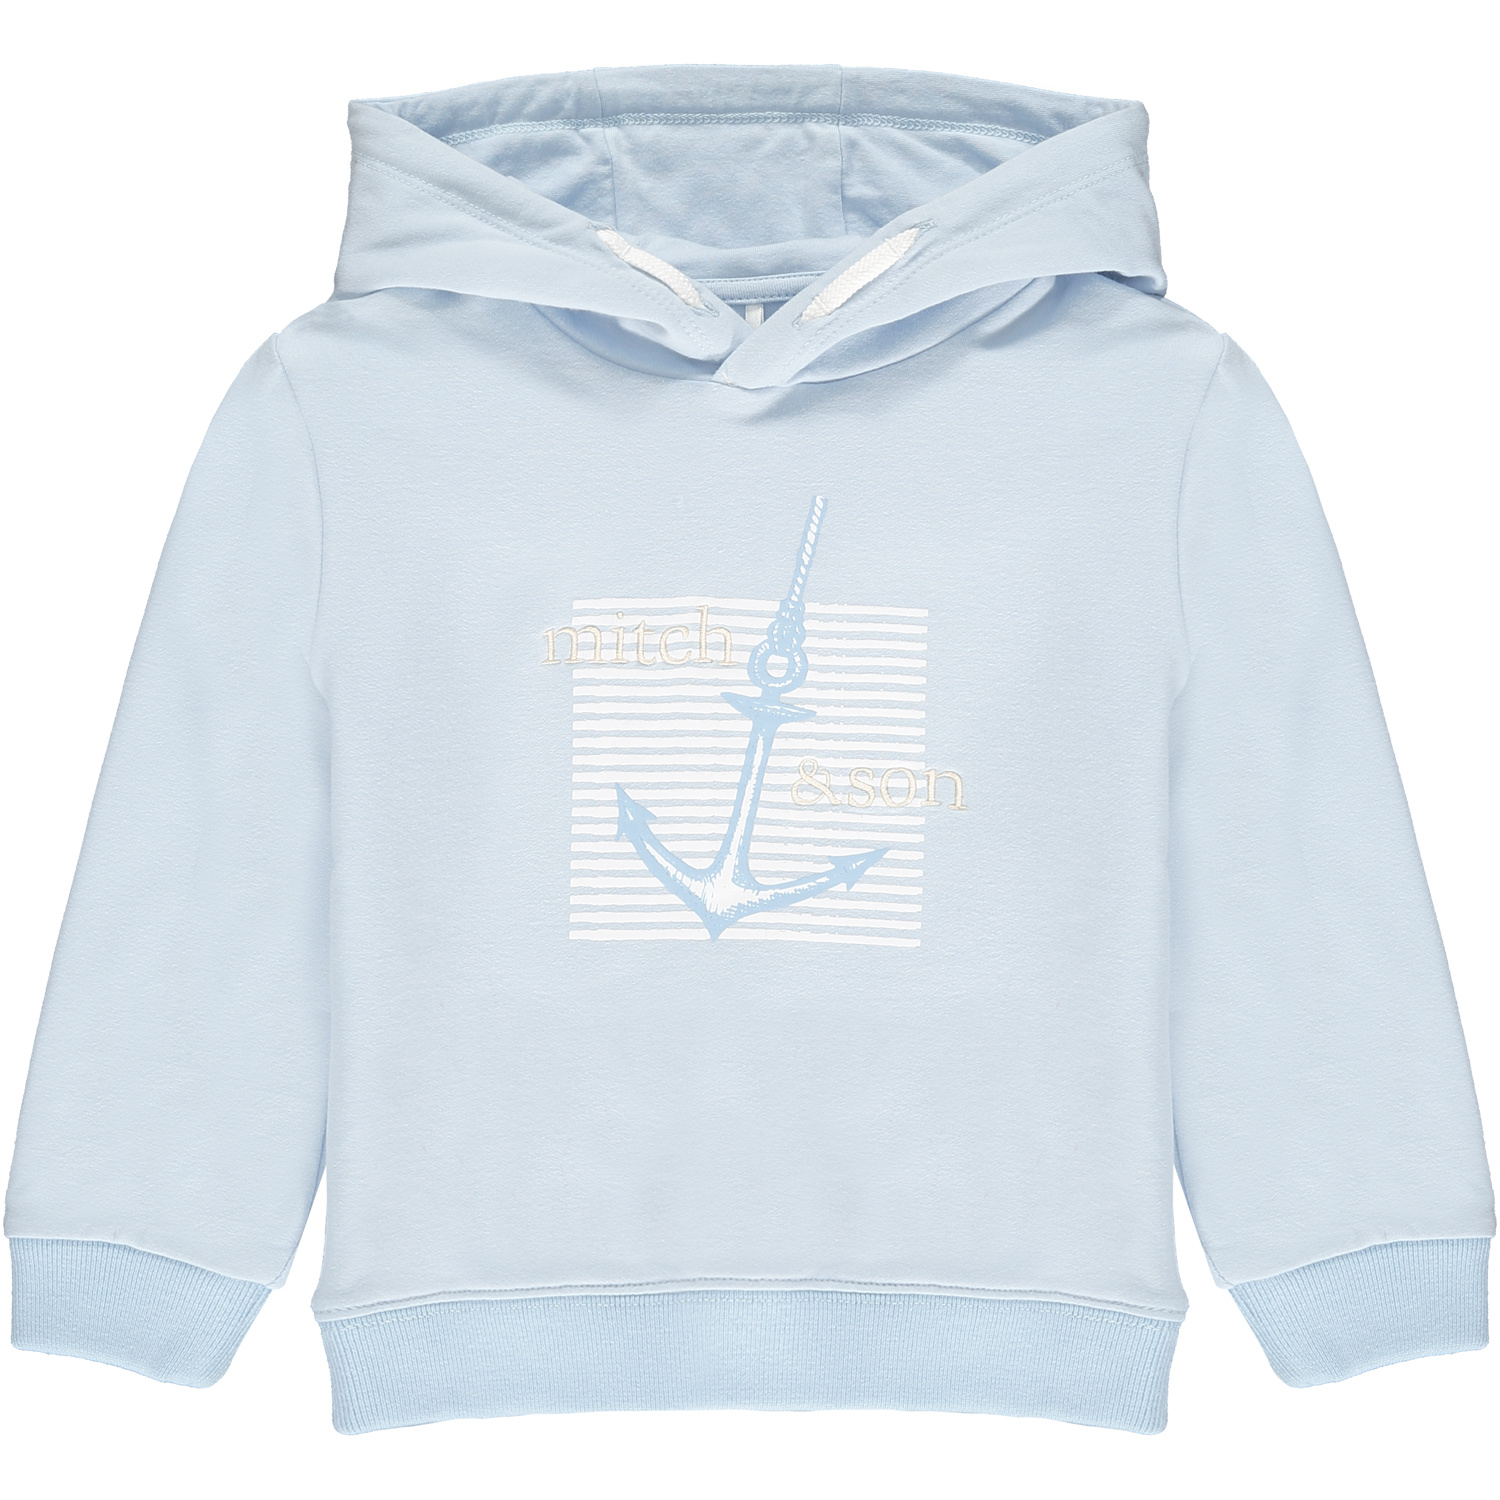 Mitch and Son Mitch & Son Berkley Anchor Hoody Tracksuit